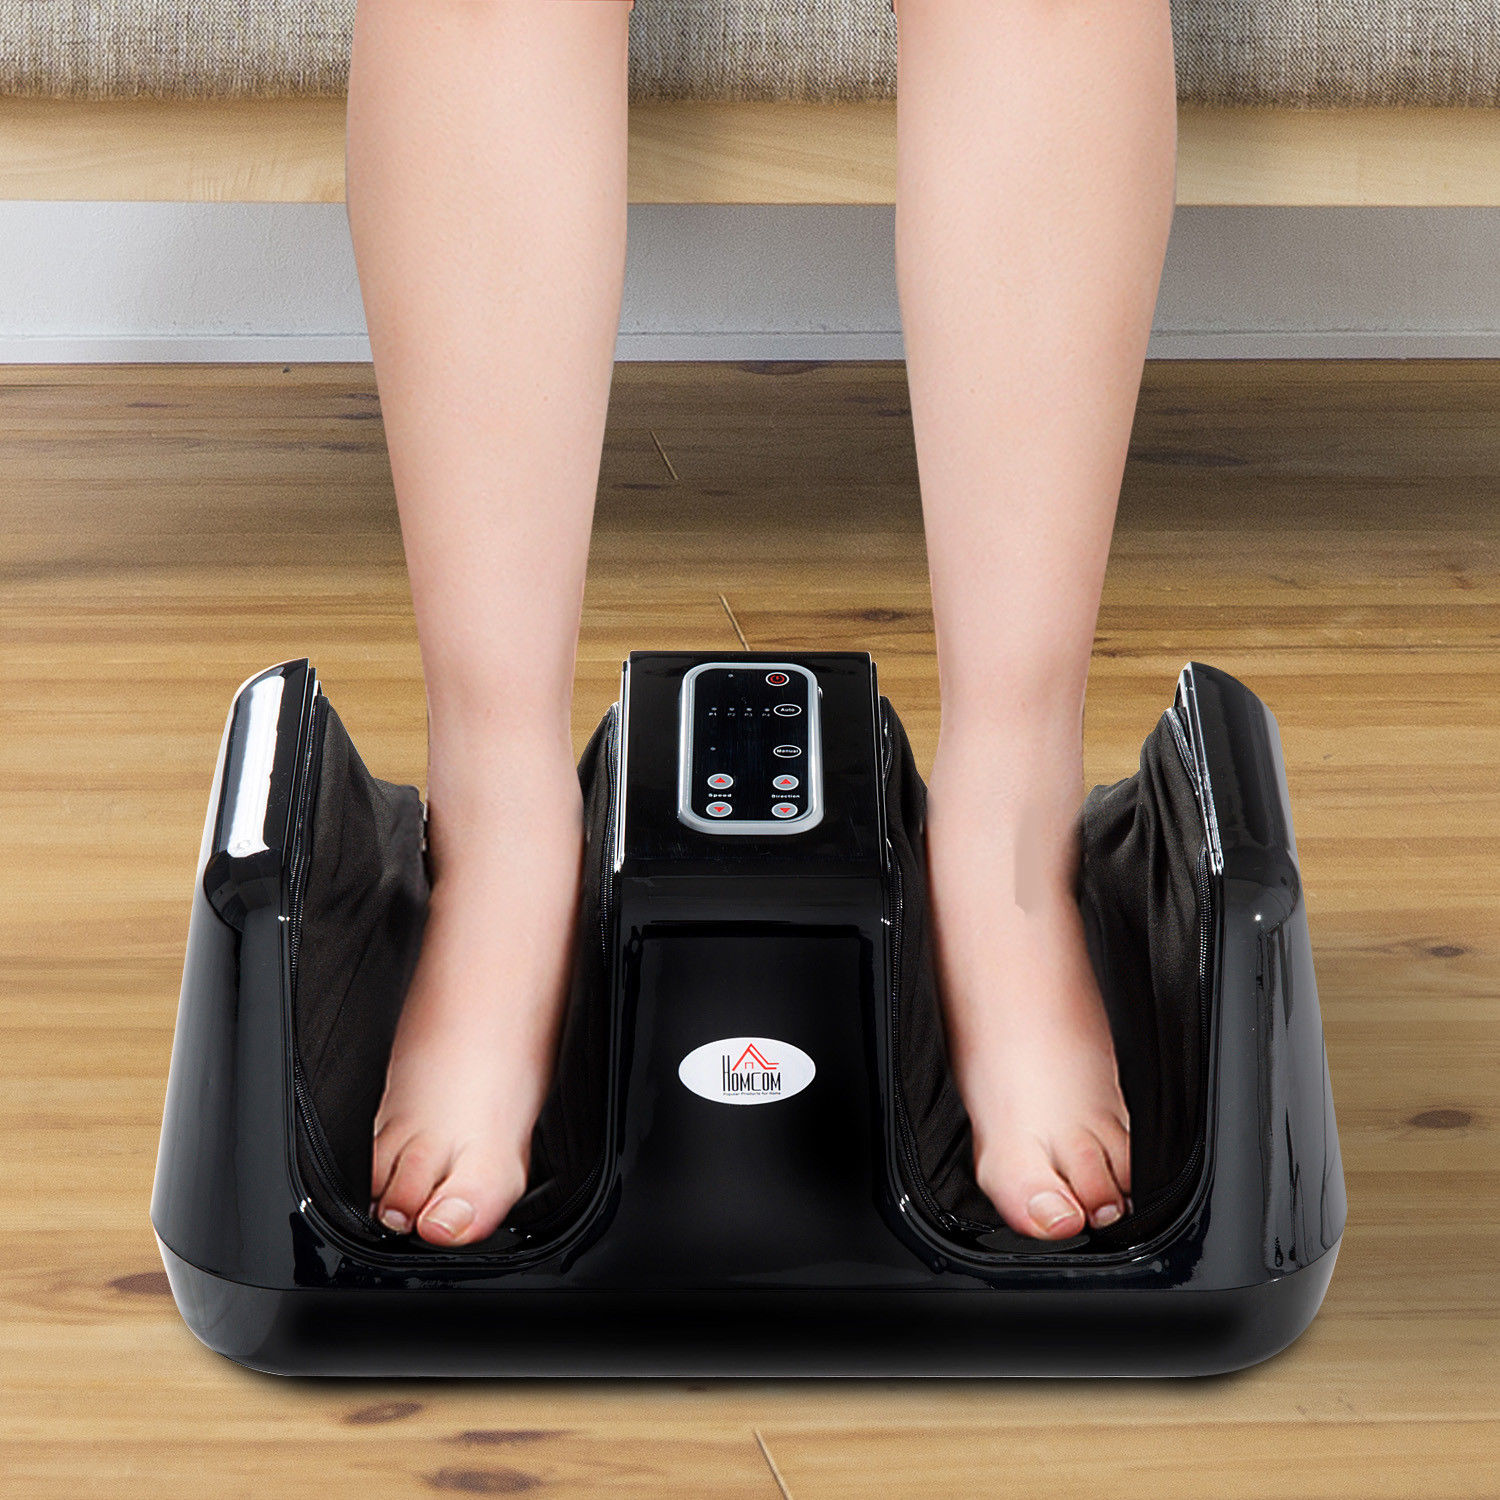 Electric-Foot-Massager-Rolling-Leg-Therapy-Heated-Calves-